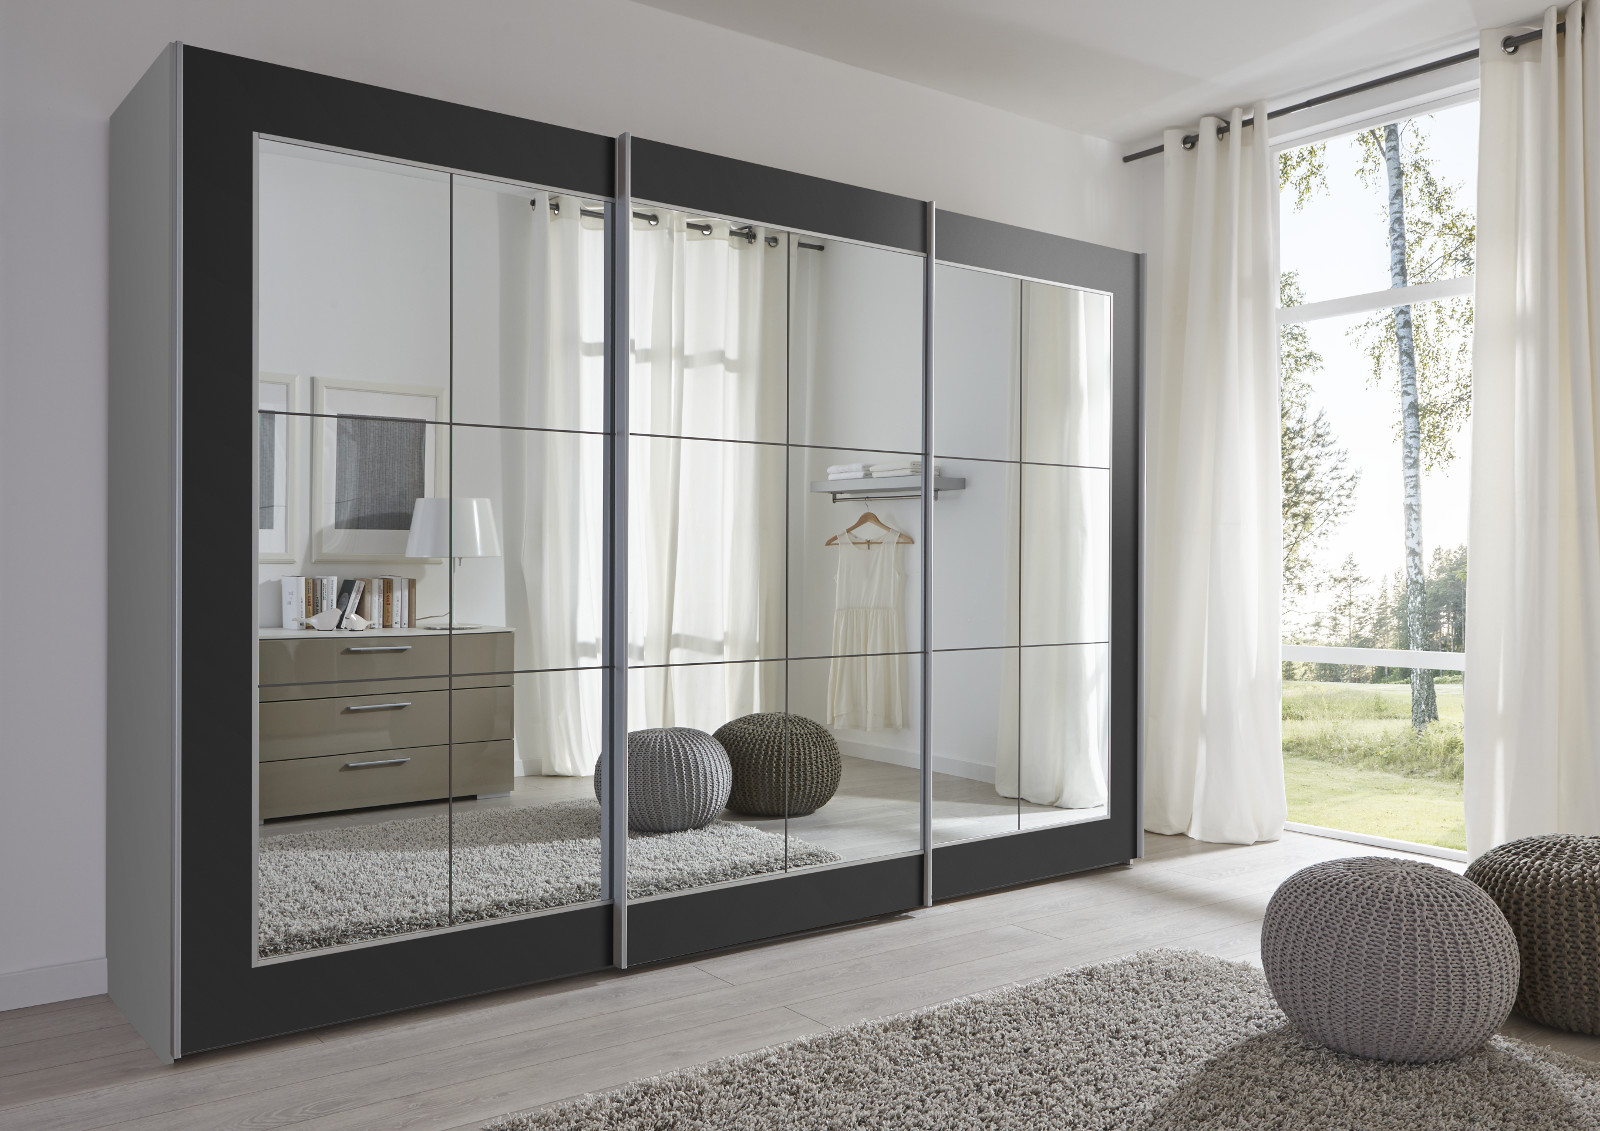 schwebet renschrank kleiderschrank wei spiegel. Black Bedroom Furniture Sets. Home Design Ideas